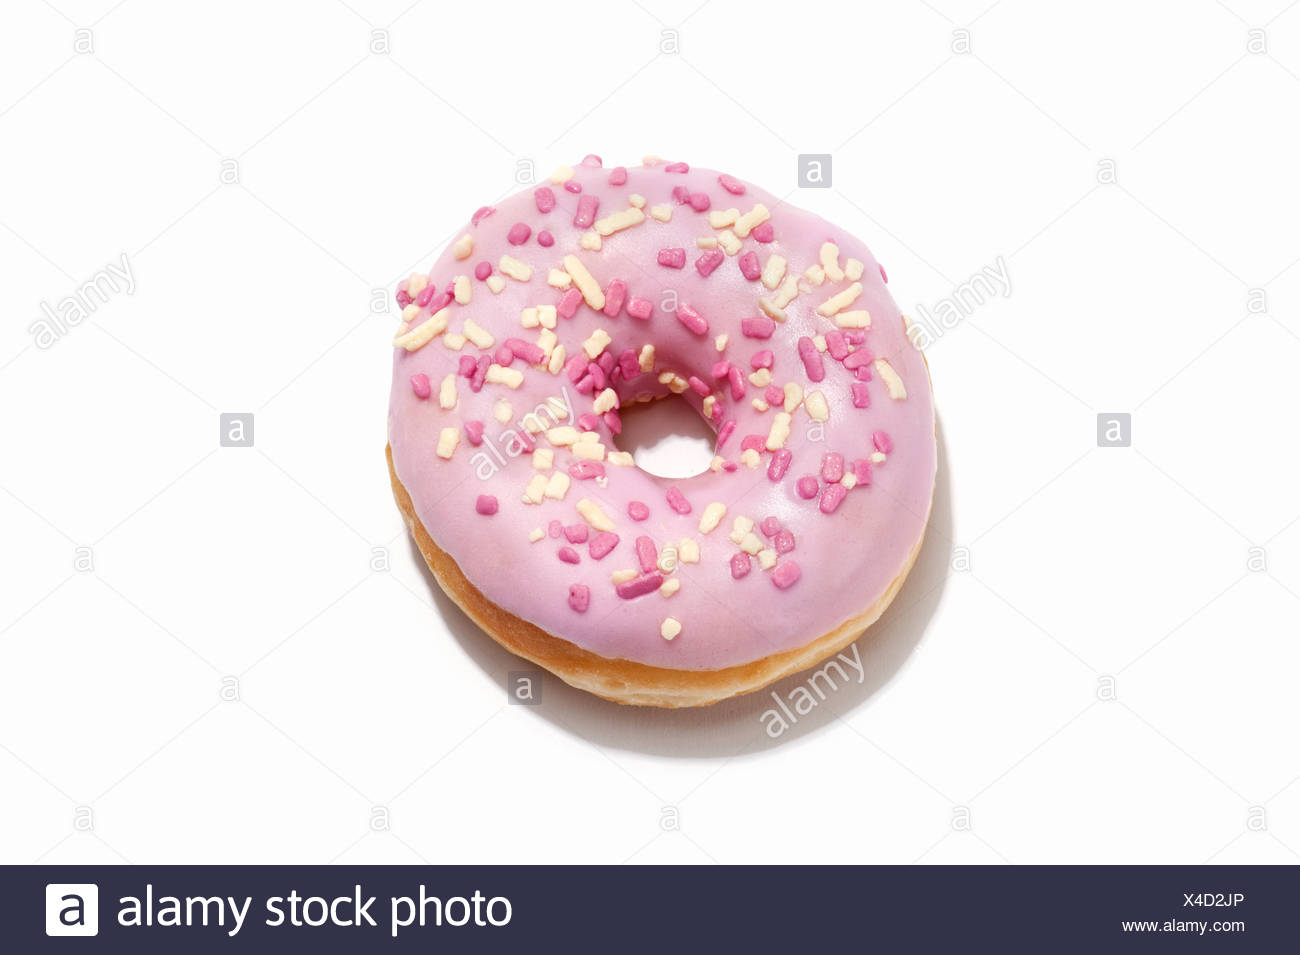 A ring doughnut with pink icing - Stock Image